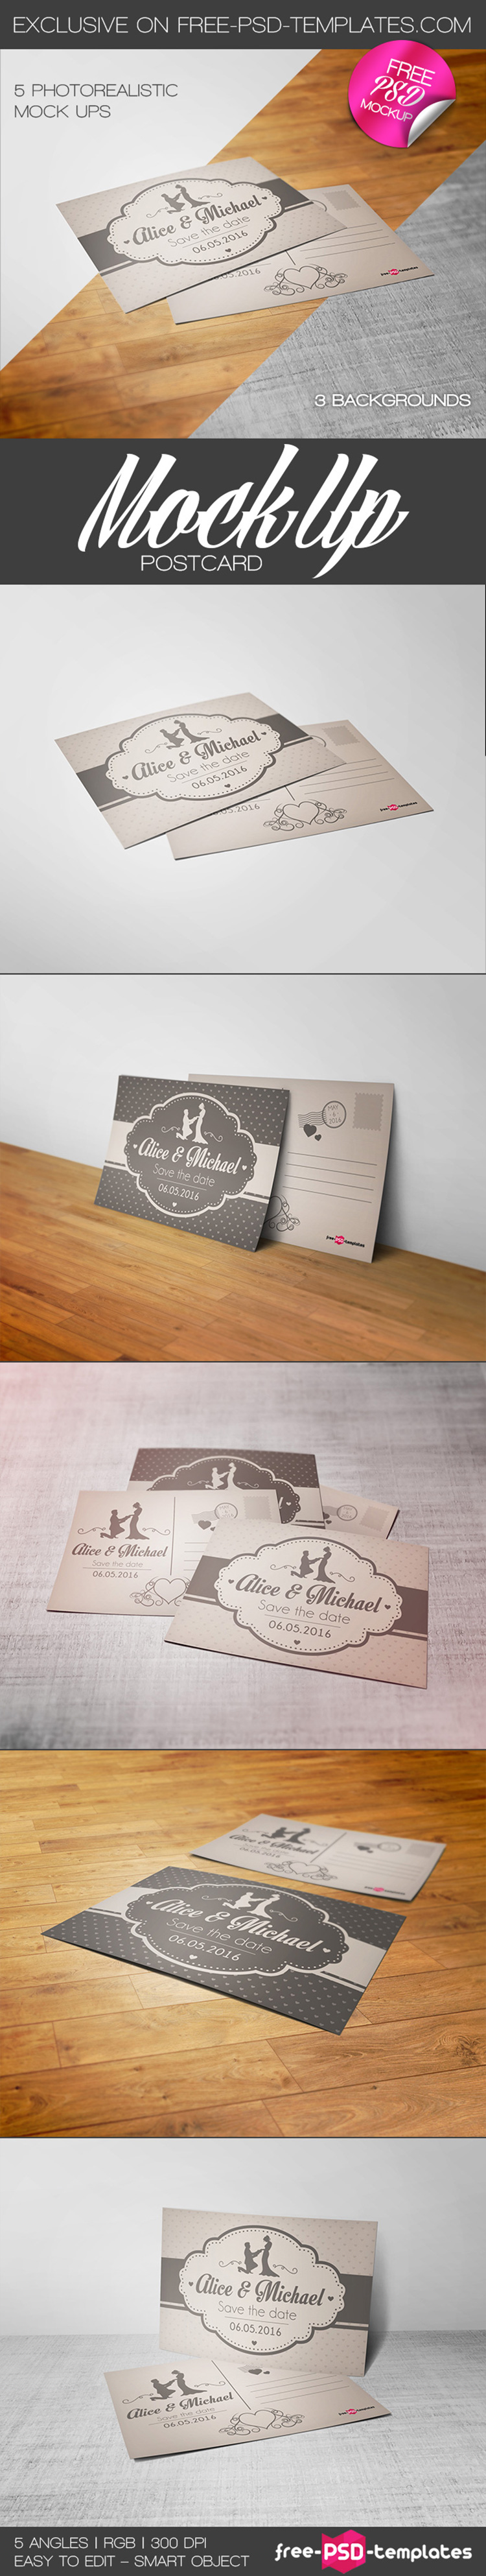 Free Mockup Psd Postcards Freebies Deals For Graphic Designers